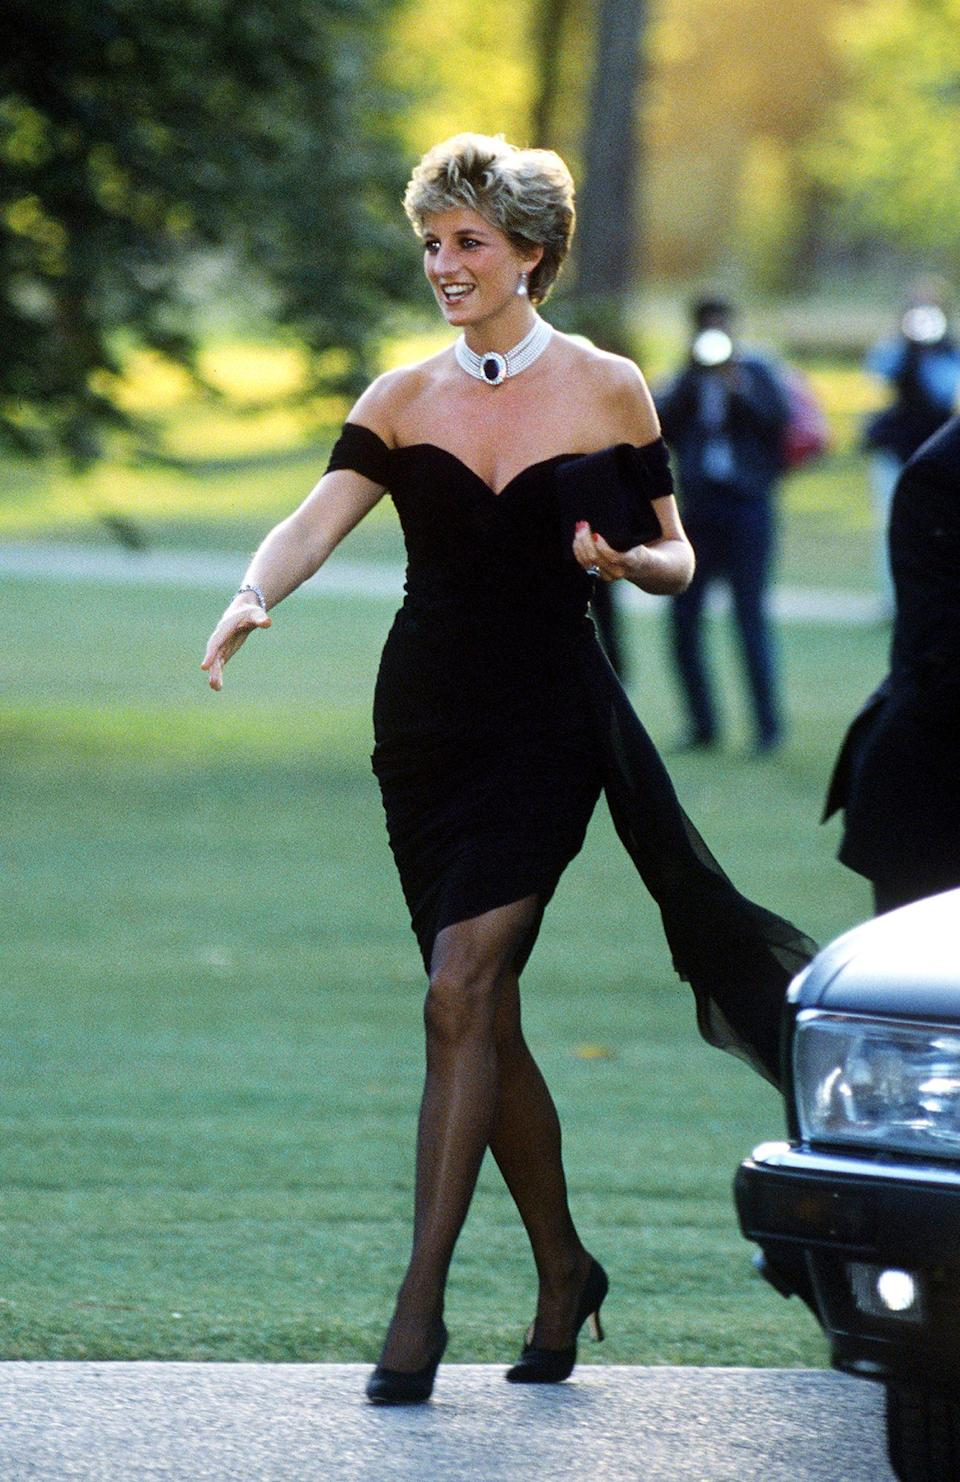 """<p>Jayne Fincher snapped this iconic photo of Princess Diana in her <a href=""""https://people.com/royals/princess-diana-revenge-dress-true-story/"""" rel=""""nofollow noopener"""" target=""""_blank"""" data-ylk=""""slk:&quot;revenge dress&quot;"""" class=""""link rapid-noclick-resp"""">""""revenge dress""""</a>, which she wore in June 1994, the same day that Prince Charles publicly admitted that he had been unfaithful to her. </p>"""